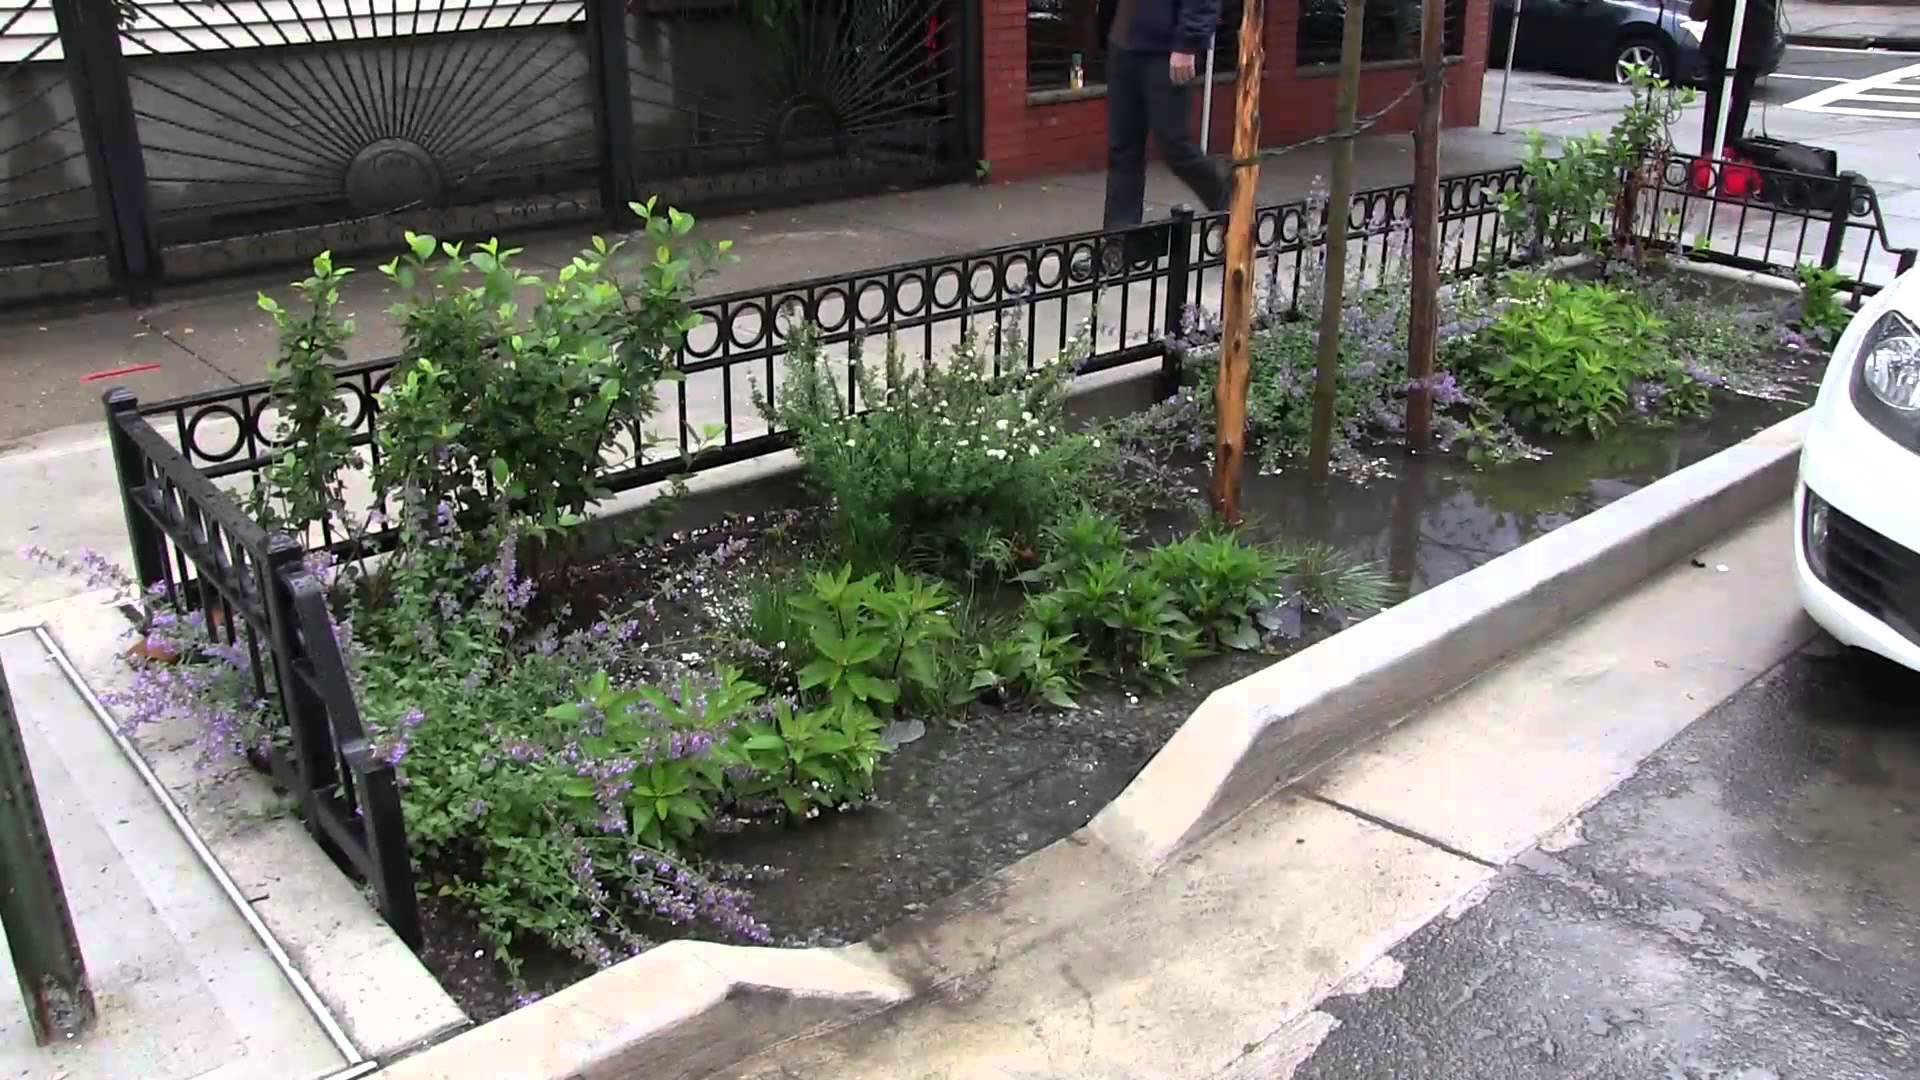 NYC Green Infrastructure